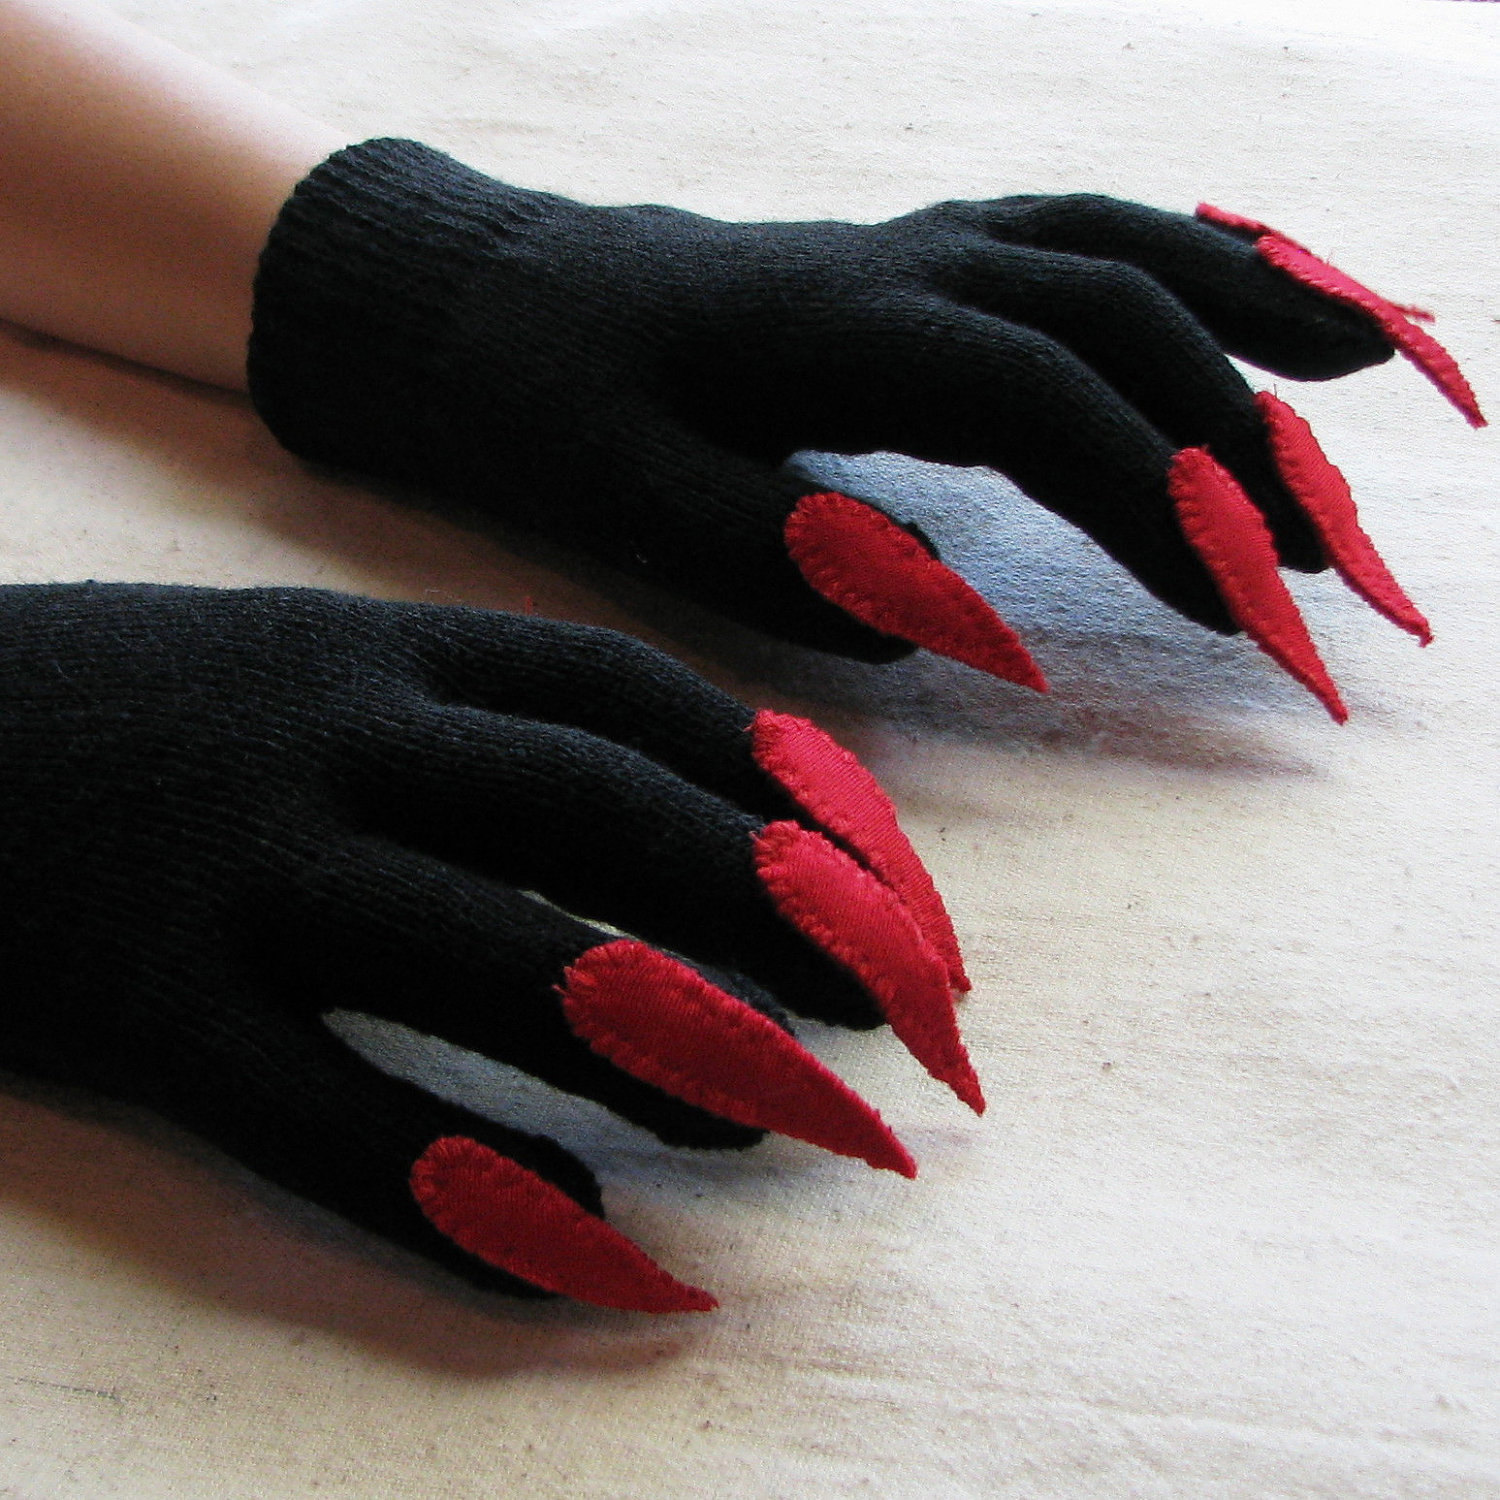 Black gloves with nails - Gloves With Claws Black And Red For Halloween Costume Or Pretend Play One Size Stretch Glove